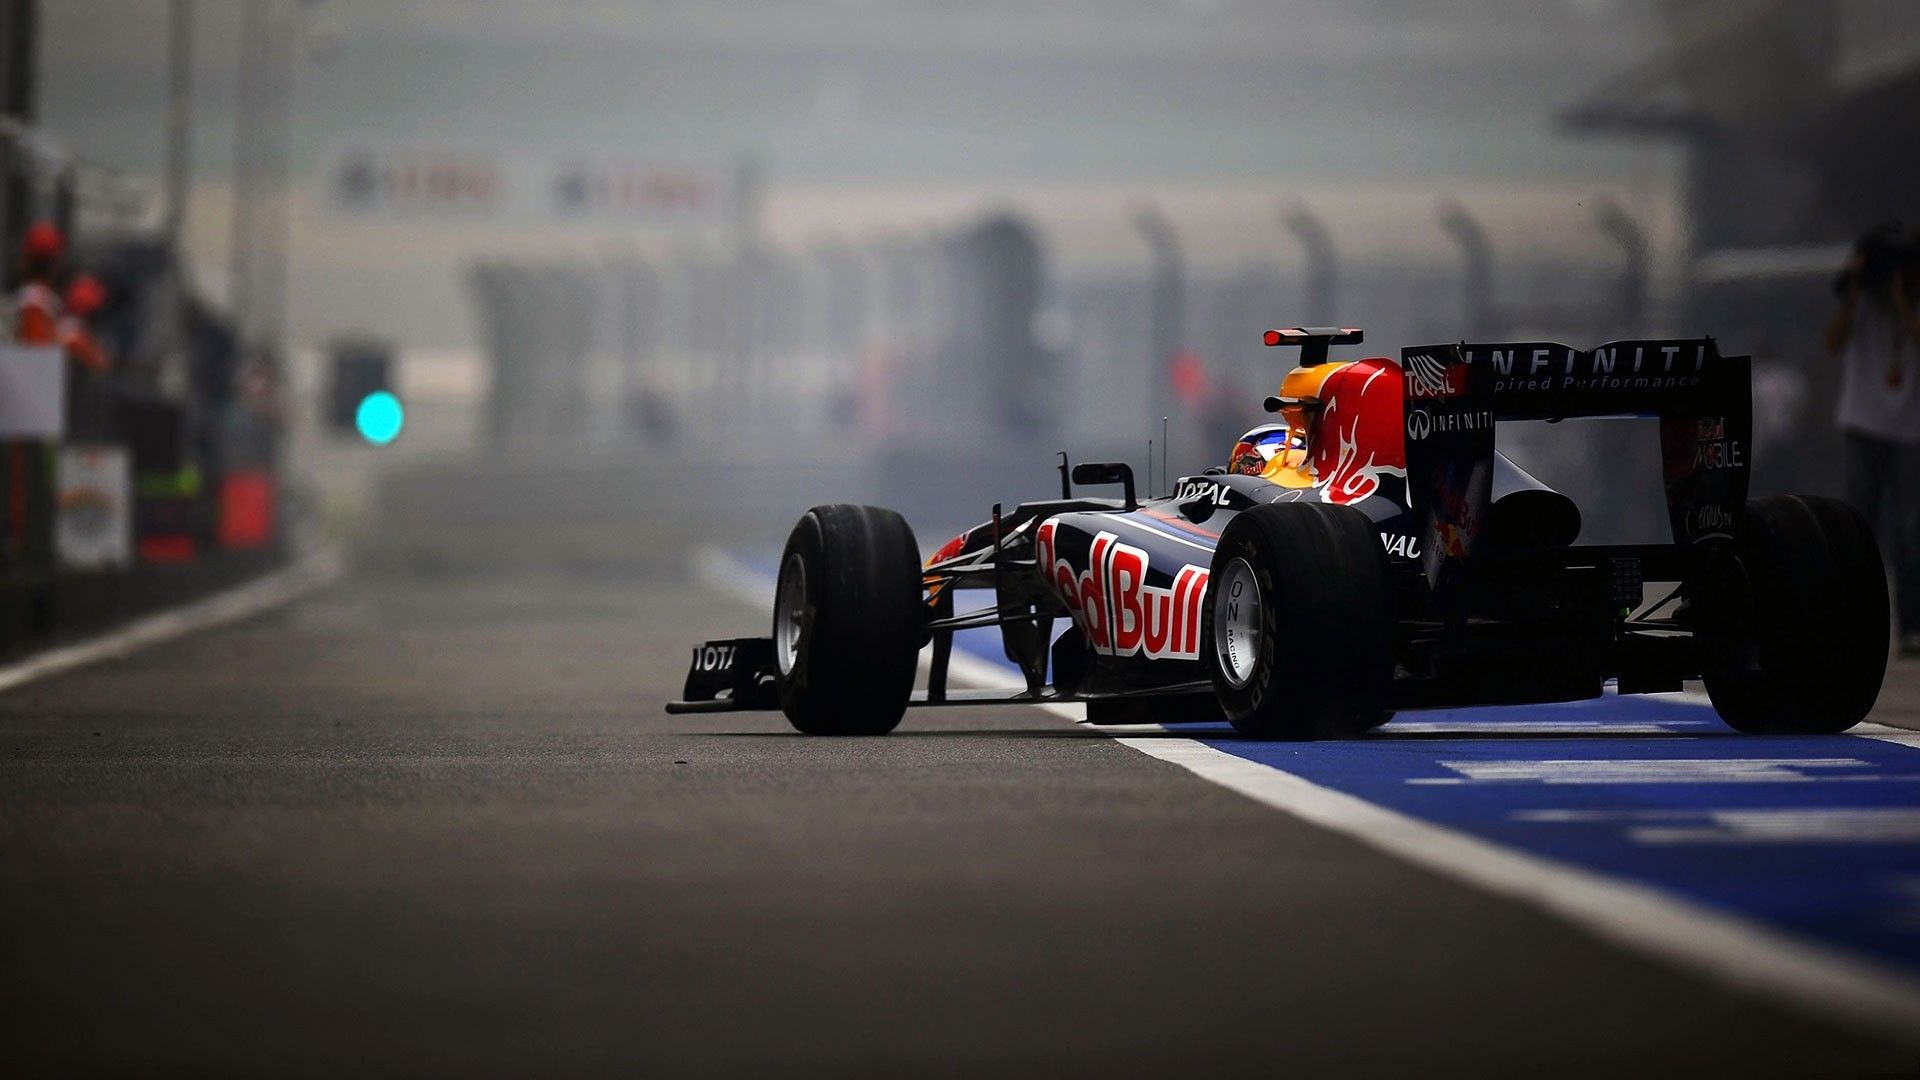 Over 50 Formula One Cars F1 Wallpapers In Hd Coches Rapidos F1 Wallpaper Hd Imagenes De Deportes